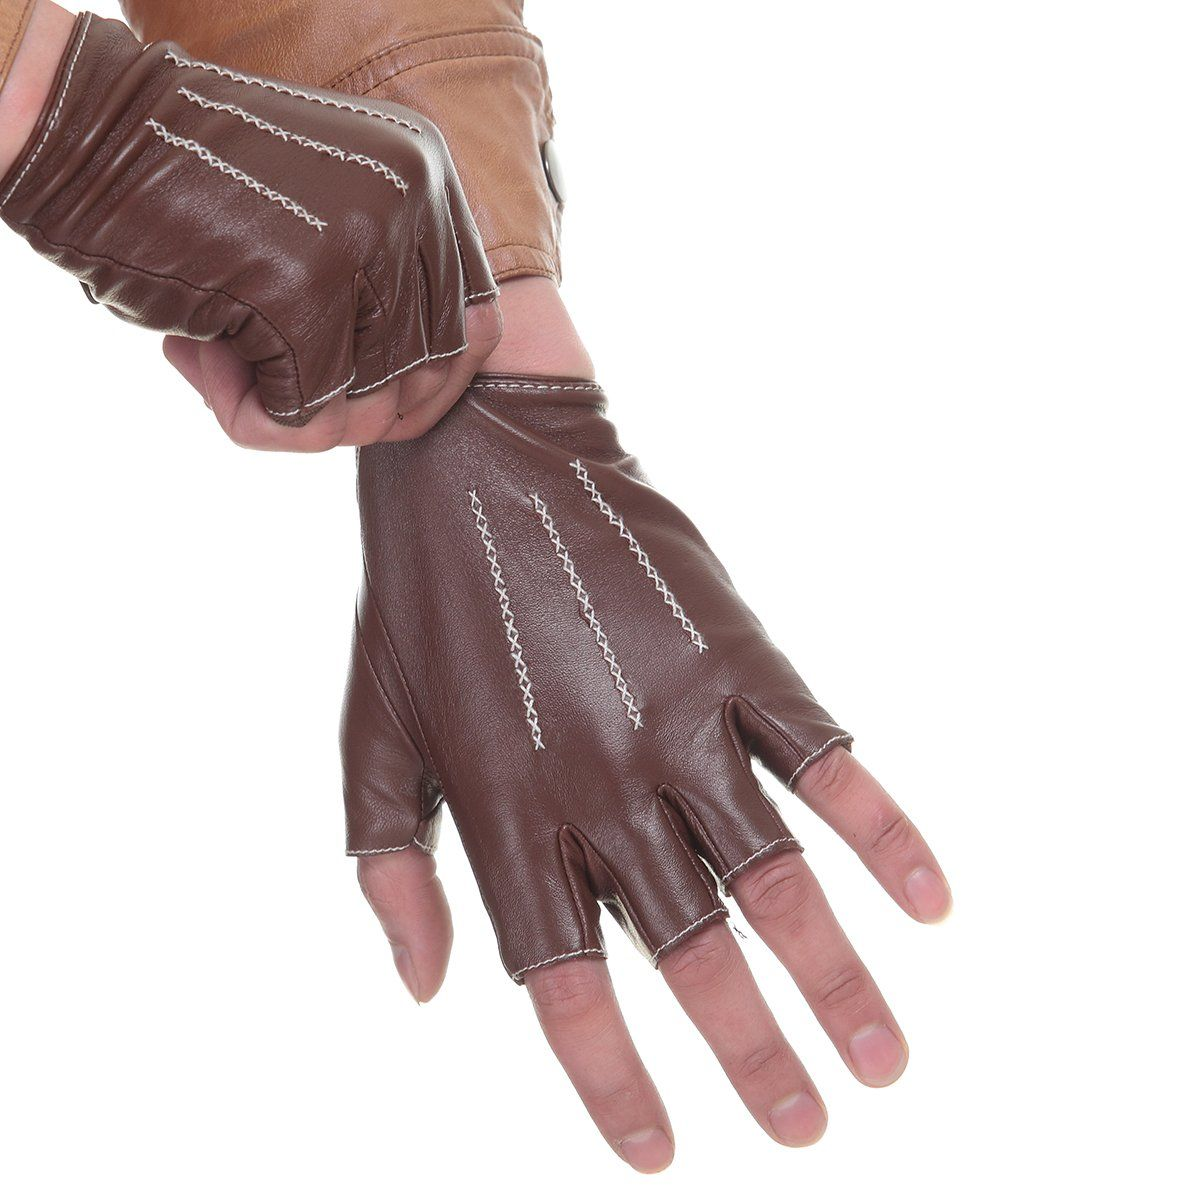 Leather gloves mens amazon - Cyrilus Authentic Men S Driving Lampskin Fingerless Leather Gloves 3 Lines Cym1314 M Brown